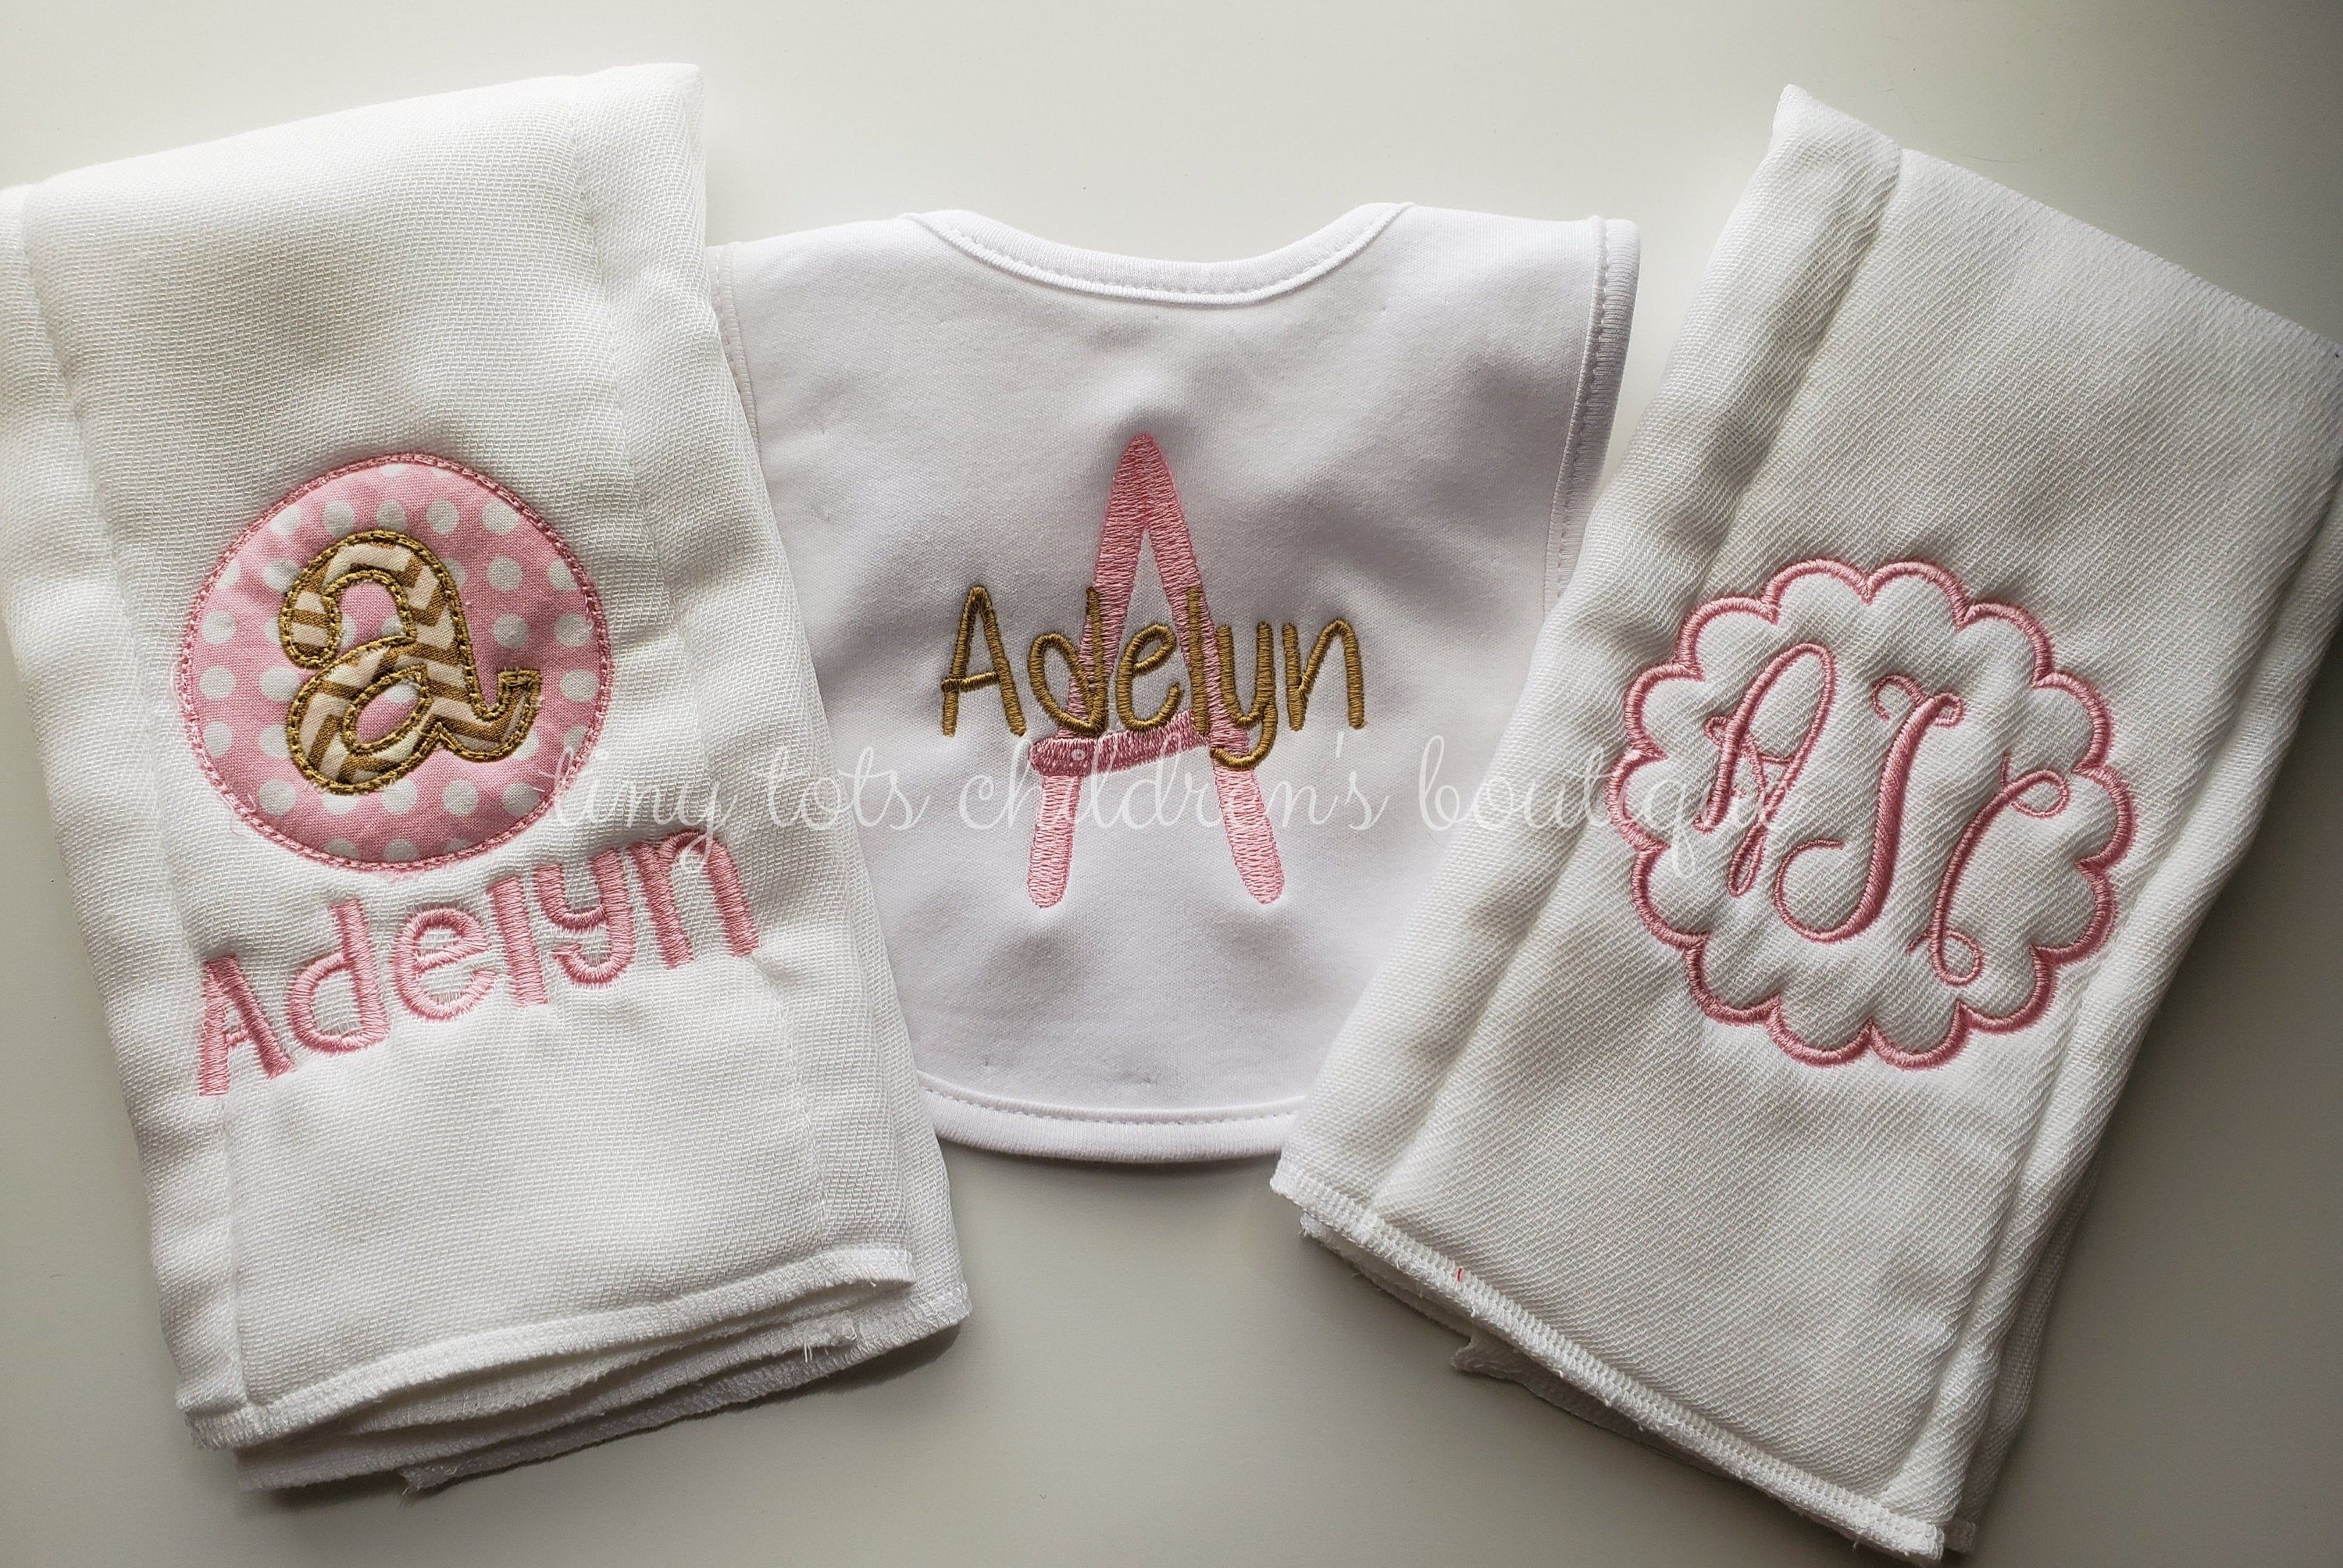 New Handmade Personalized Embroidered Pink Girl Baby Bib and Burp Cloths Sets